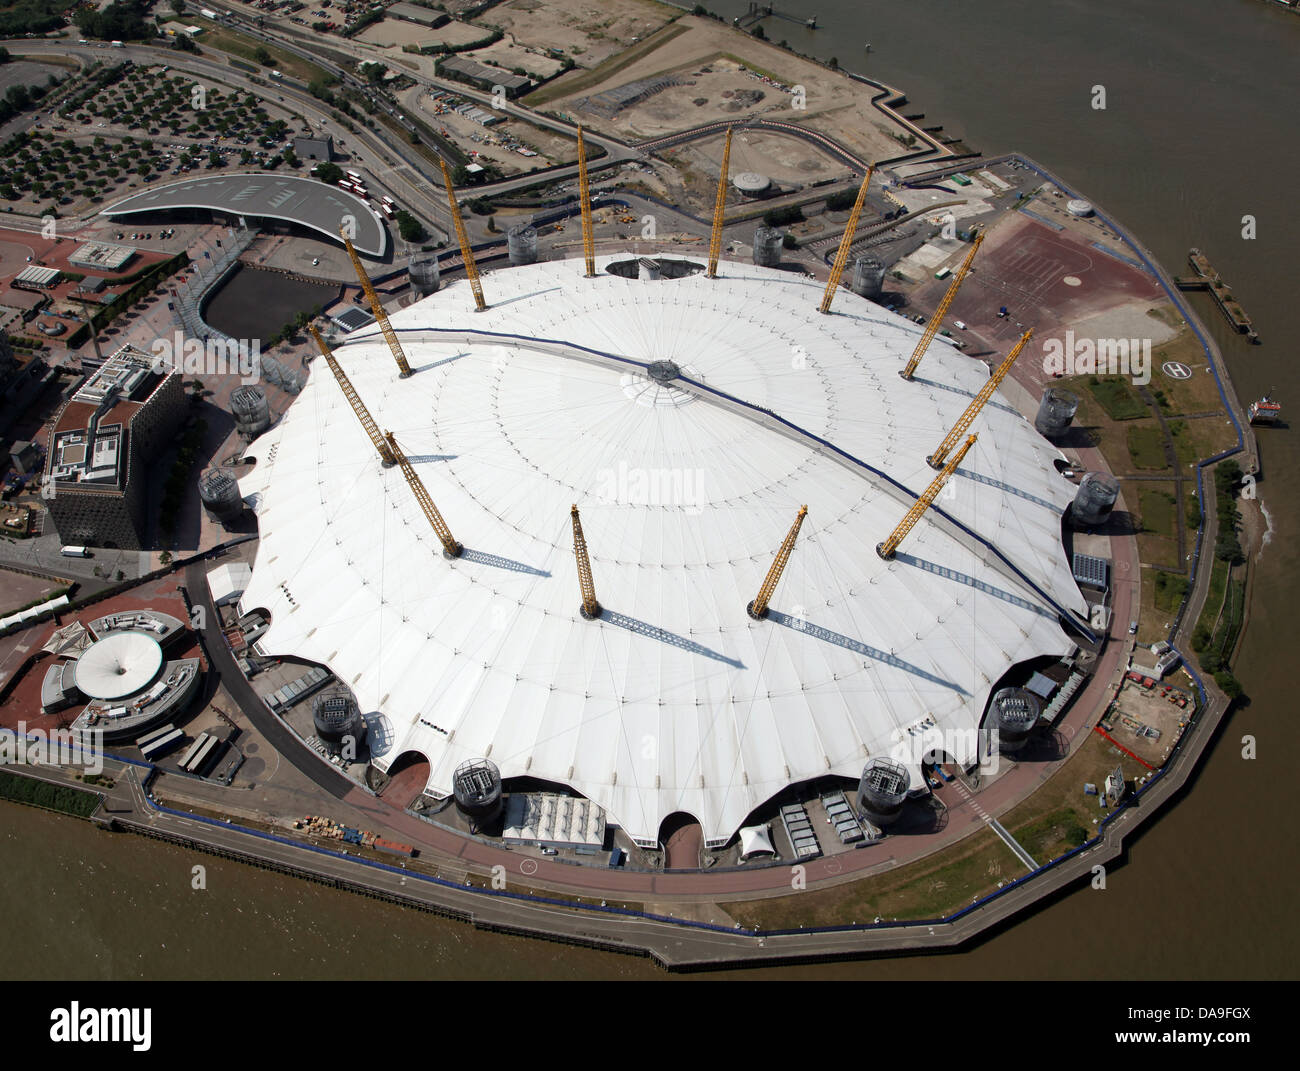 aerial view of the O2 Arena, Millennium Dome, London - Stock Image